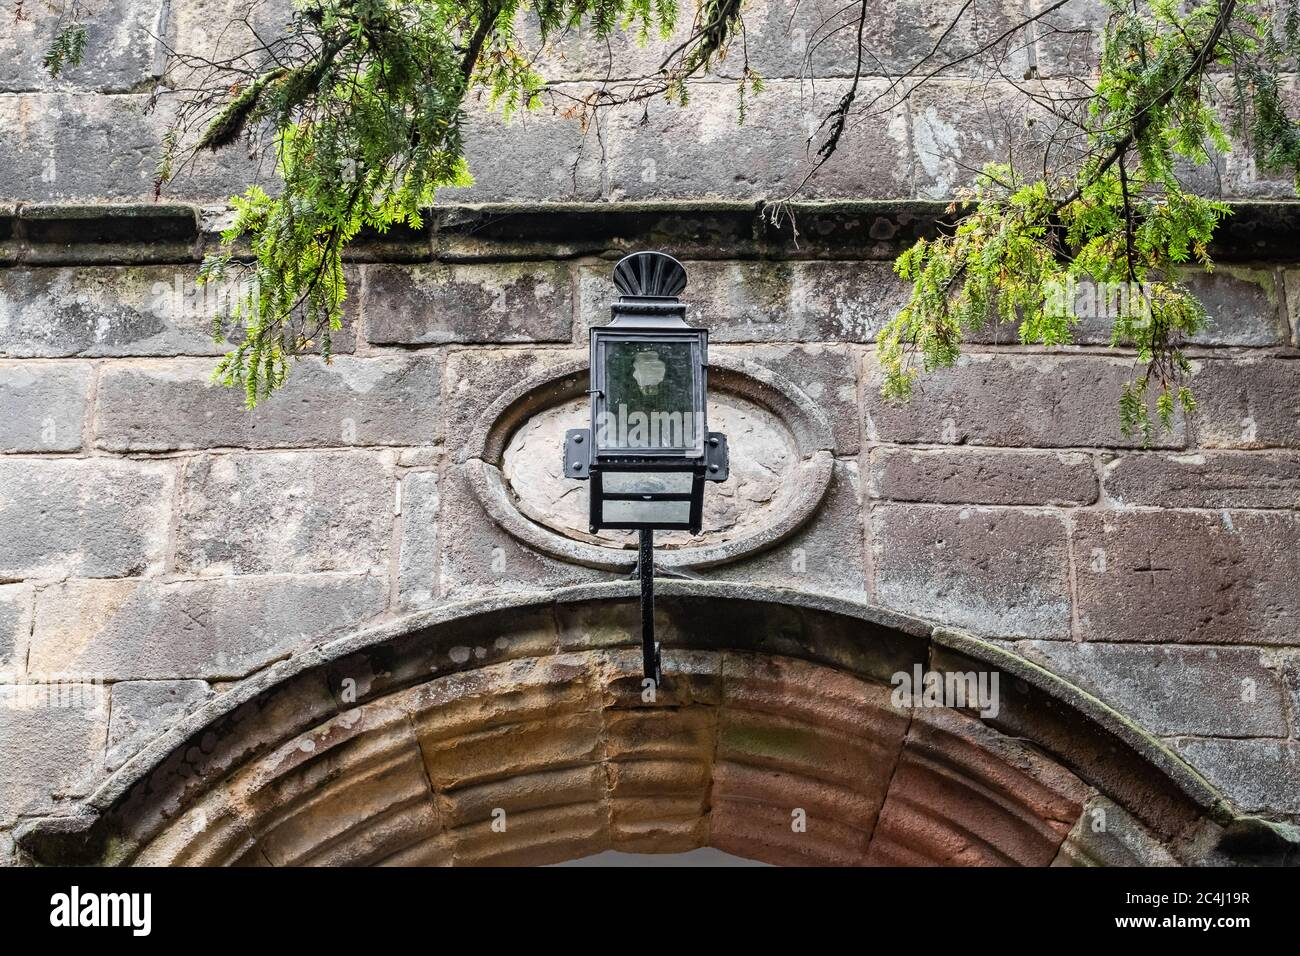 rought Iron decorative lantern seen at the entrance to an old, medieval building. A new style, energy efficient bulb is seen within the lantern itself Stock Photo